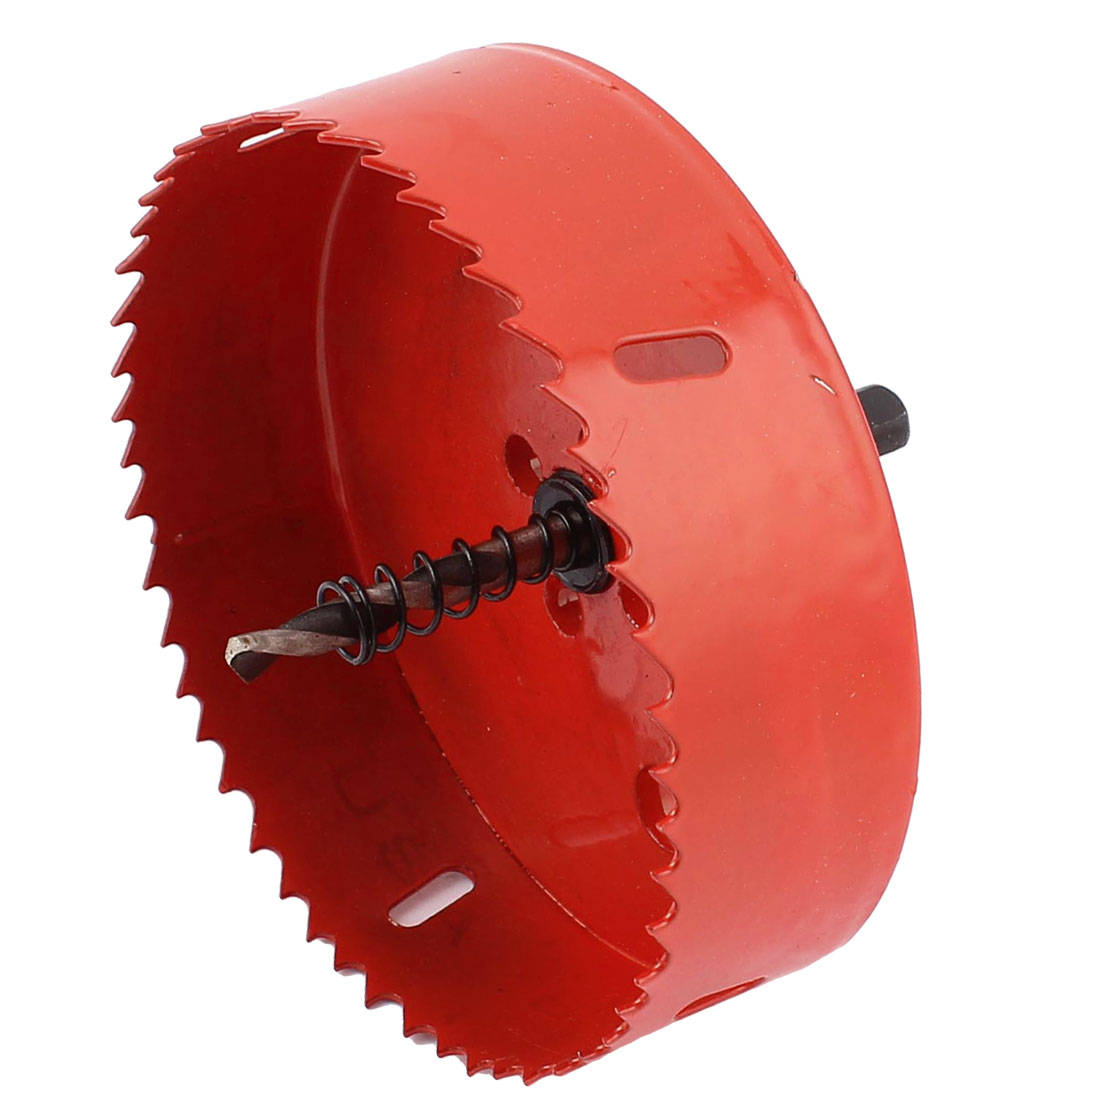 Подробнее о UXCELL 120Mm Cutting Dia Toothed Bi-Metal Hole Saw Cutter Drill Bit Red For Wood Iron uxcell m42 hss triangle shank bi metal hole saw drill cutter 82mm long 28mm cutting dia